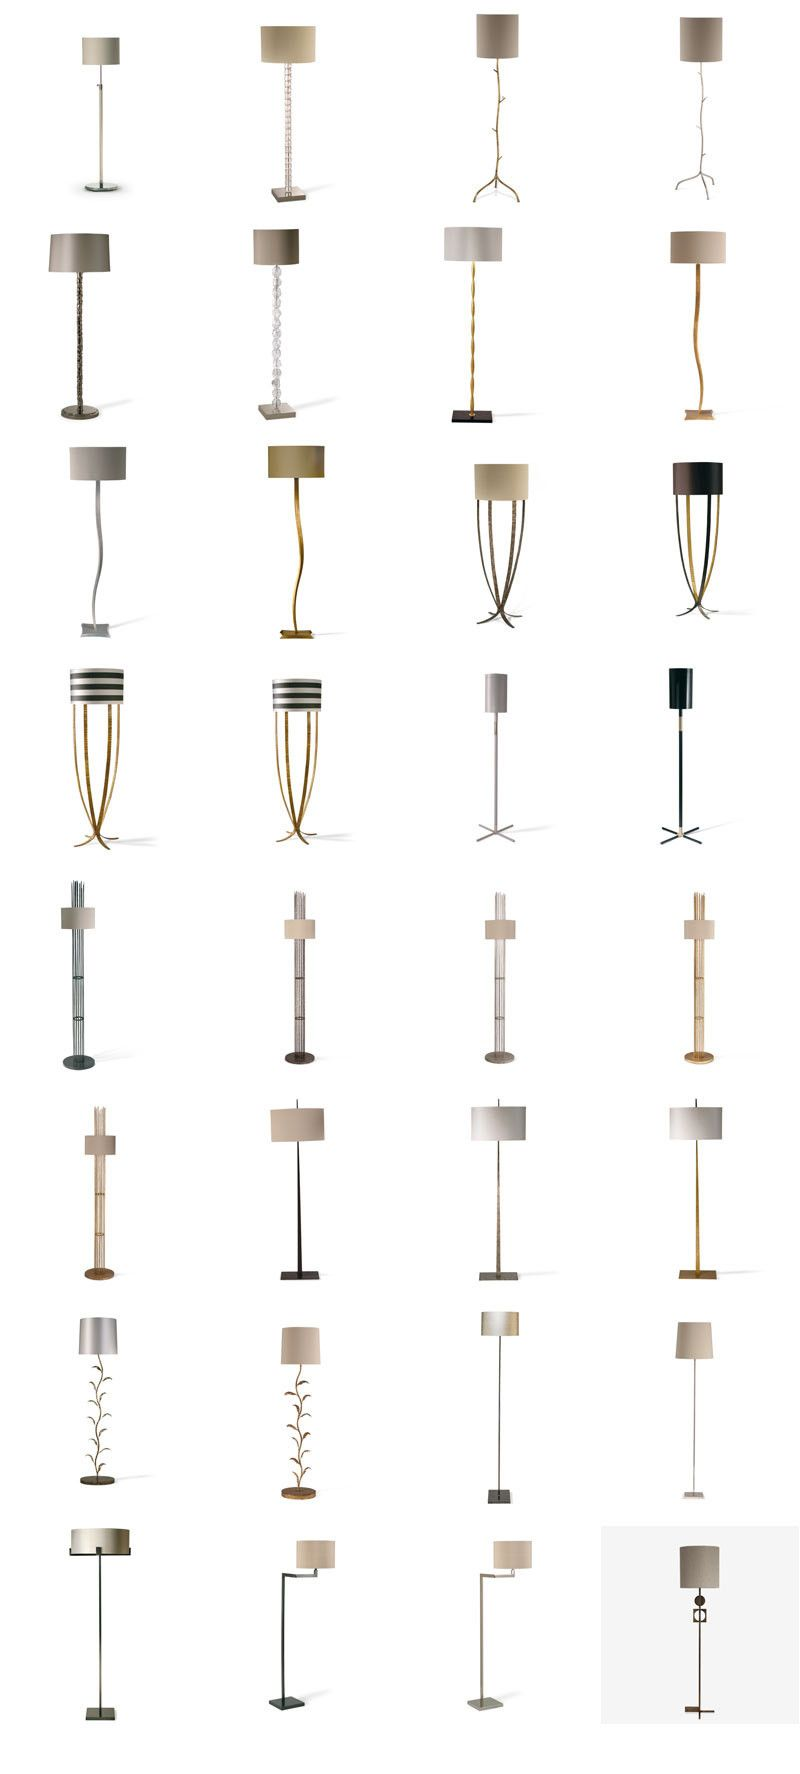 Photoshop psd floorlamps blocks pinterest photoshop floor lamp photoshop psd floorlamps blocks cad design free cad blocks drawingsdetails aloadofball Images